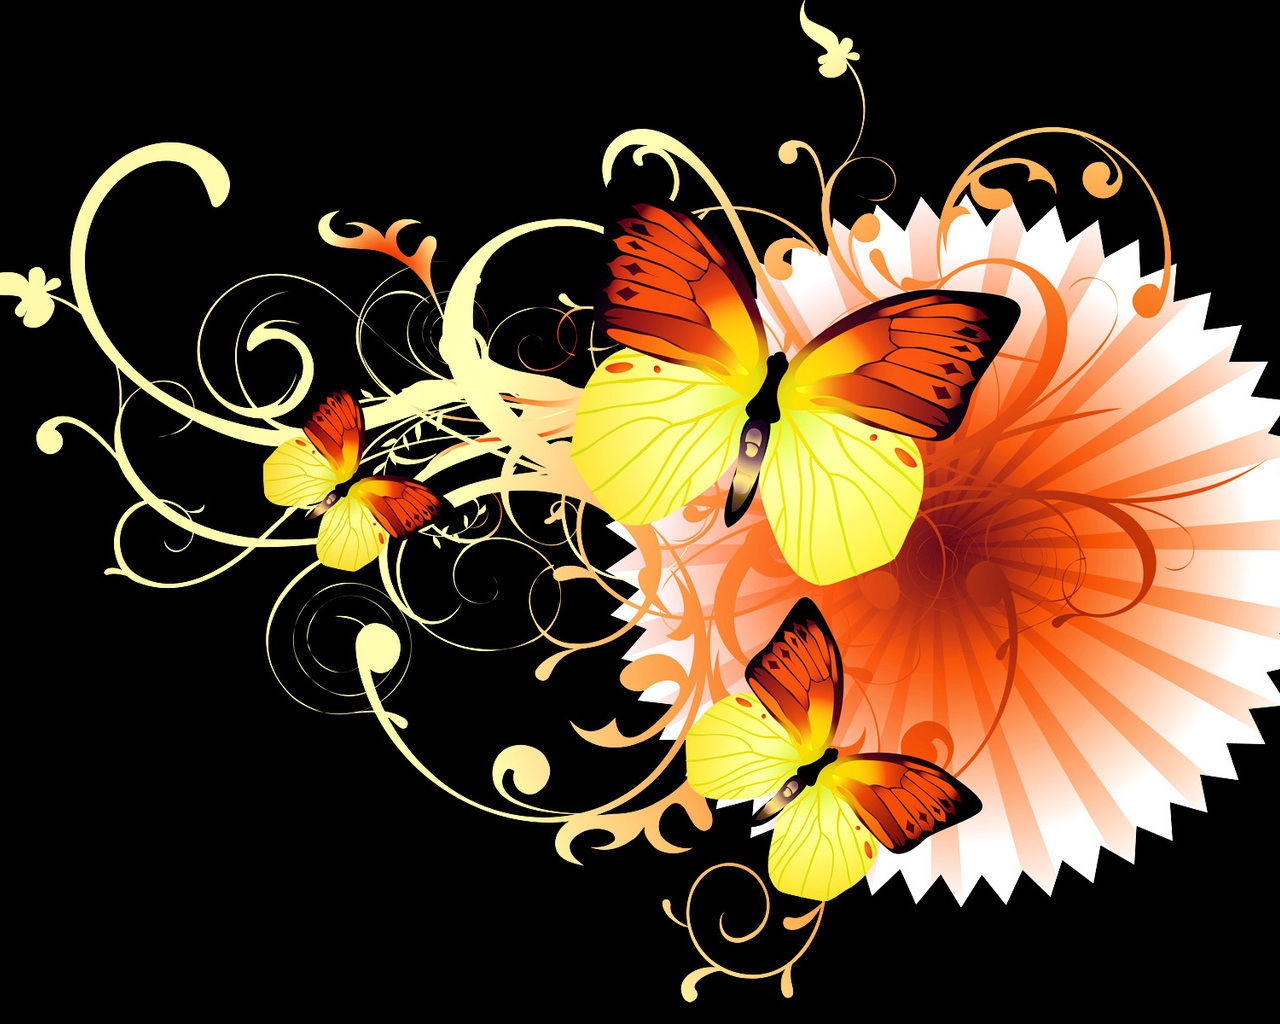 Cool Butterfly Wallpapers Backgrounds HQ Wallpapers   Wallpapers 1280x1024